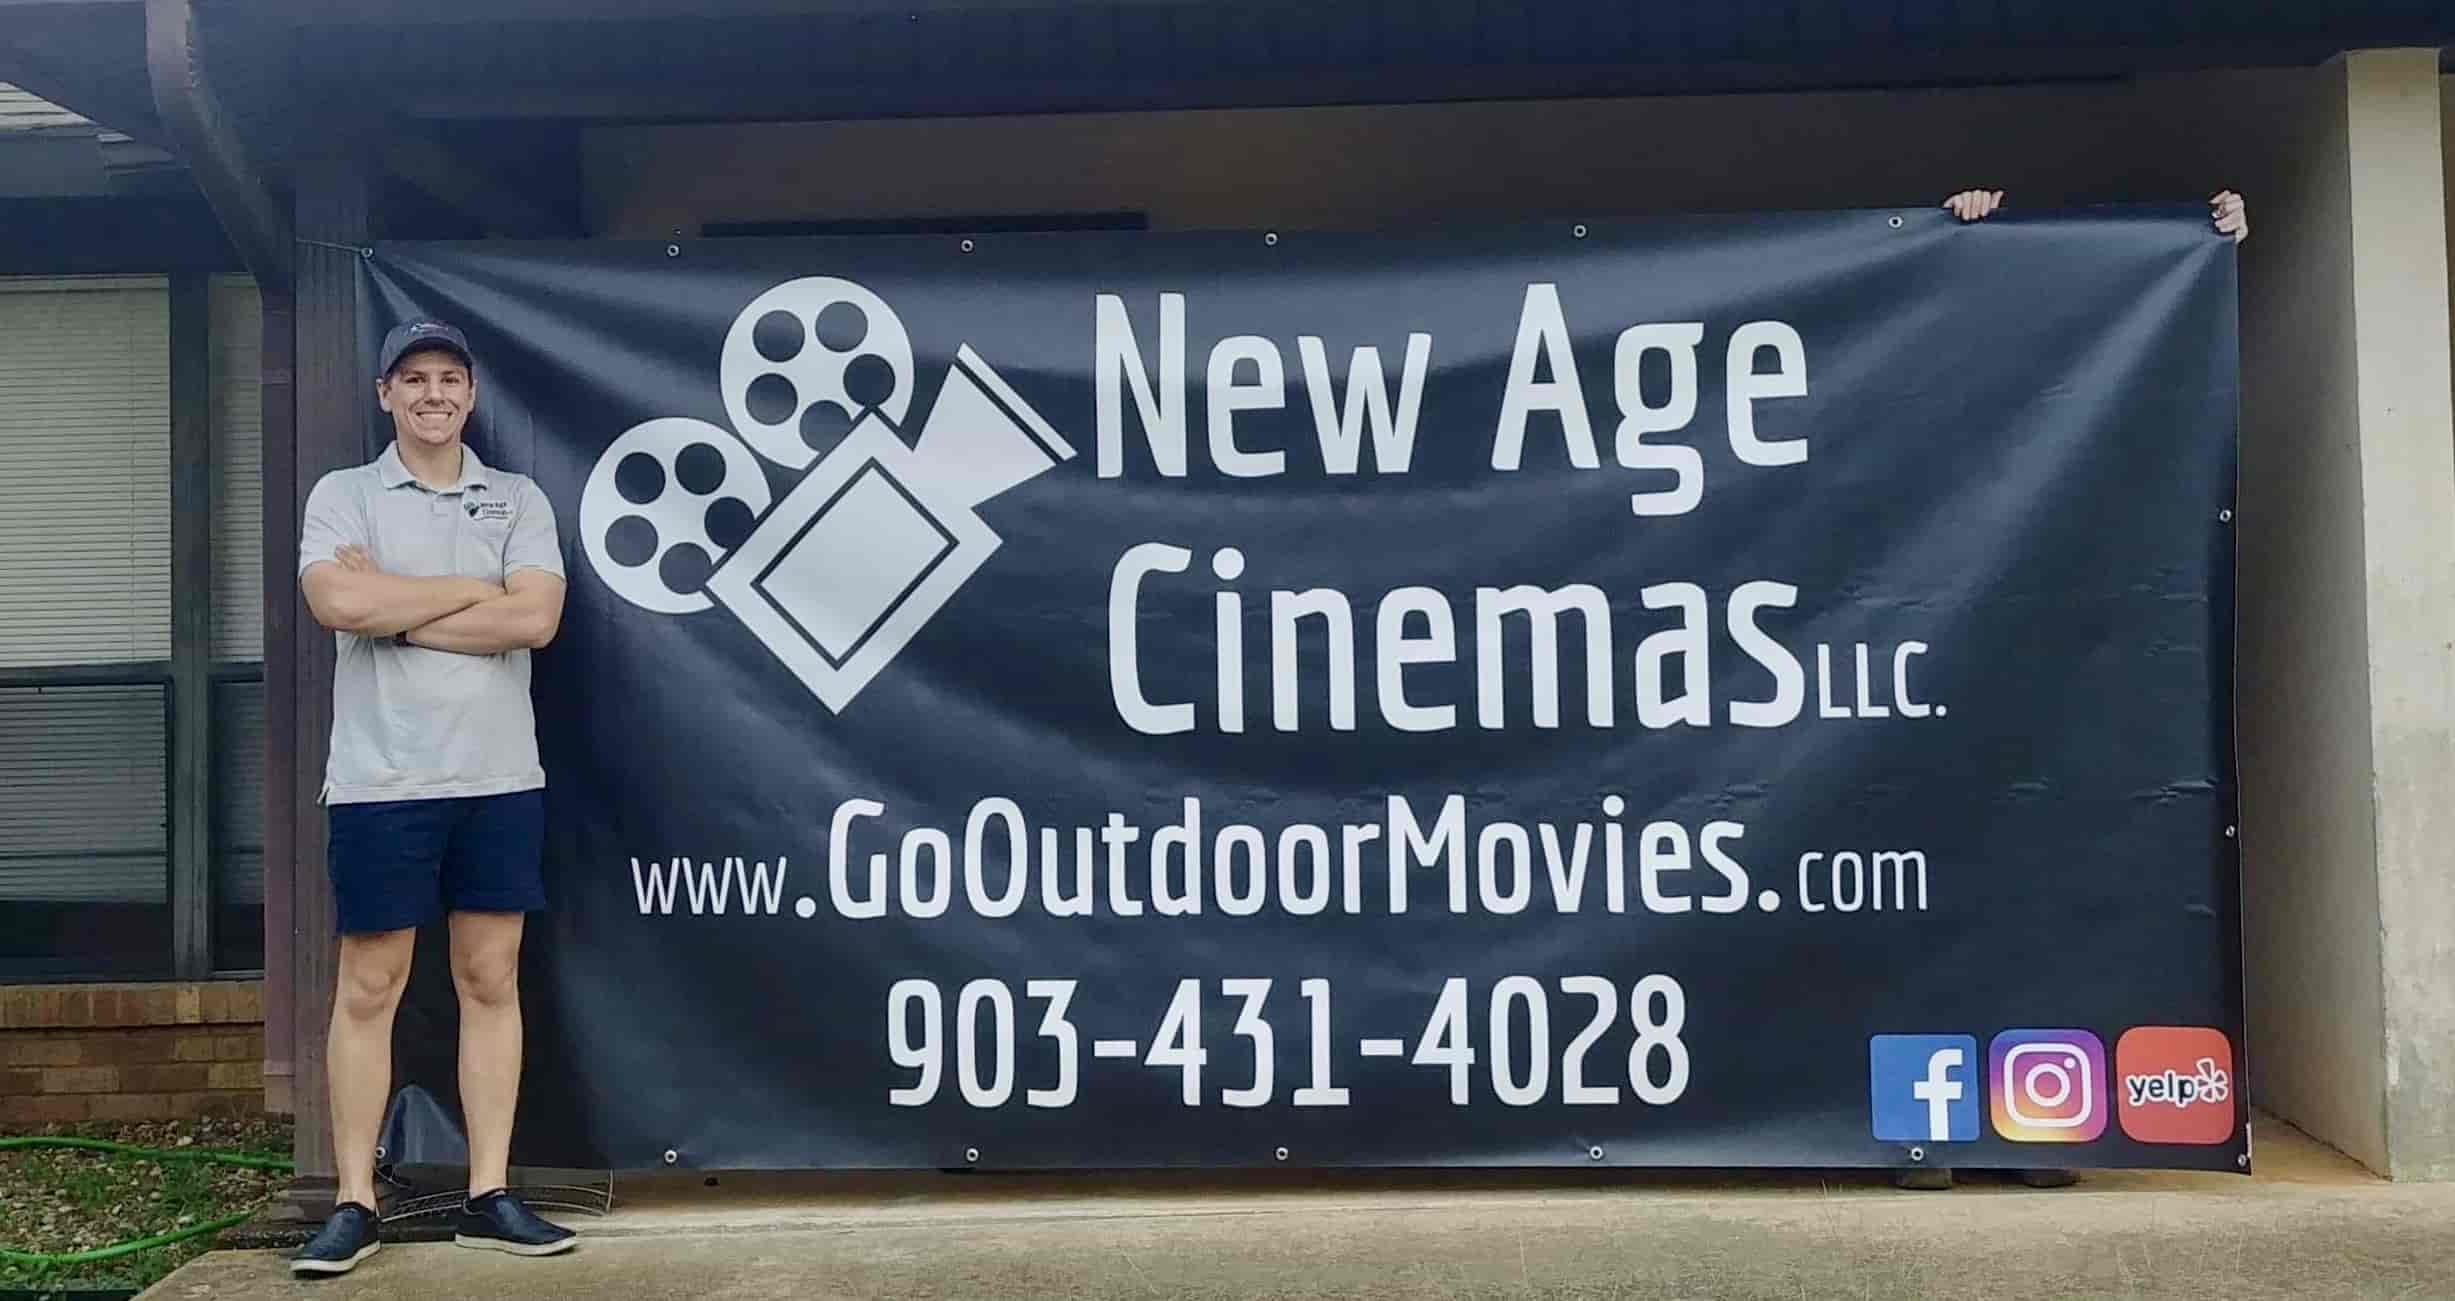 New Age Cinemas Owner and Founder Shane